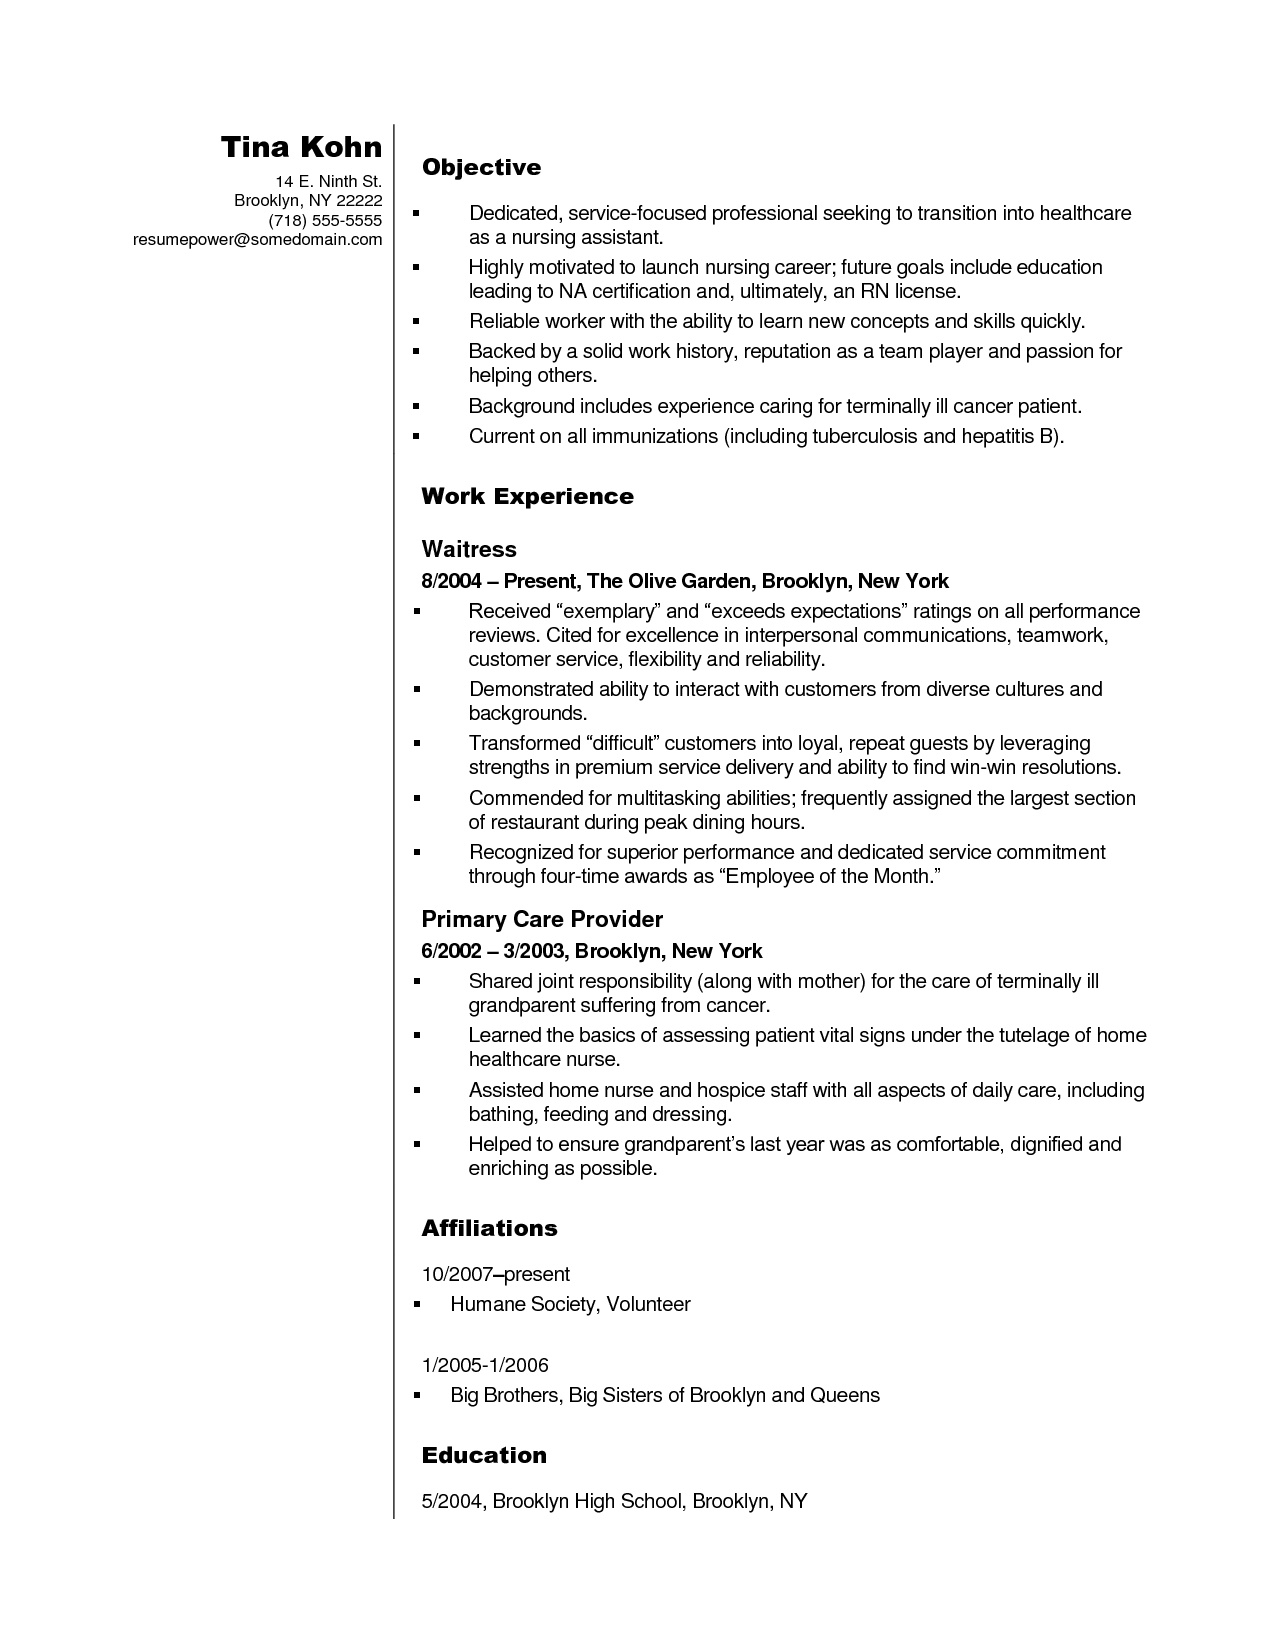 Cna Resume Objective - Nursing assistant Resume Objective Examples Fresh Cna Resume Sample